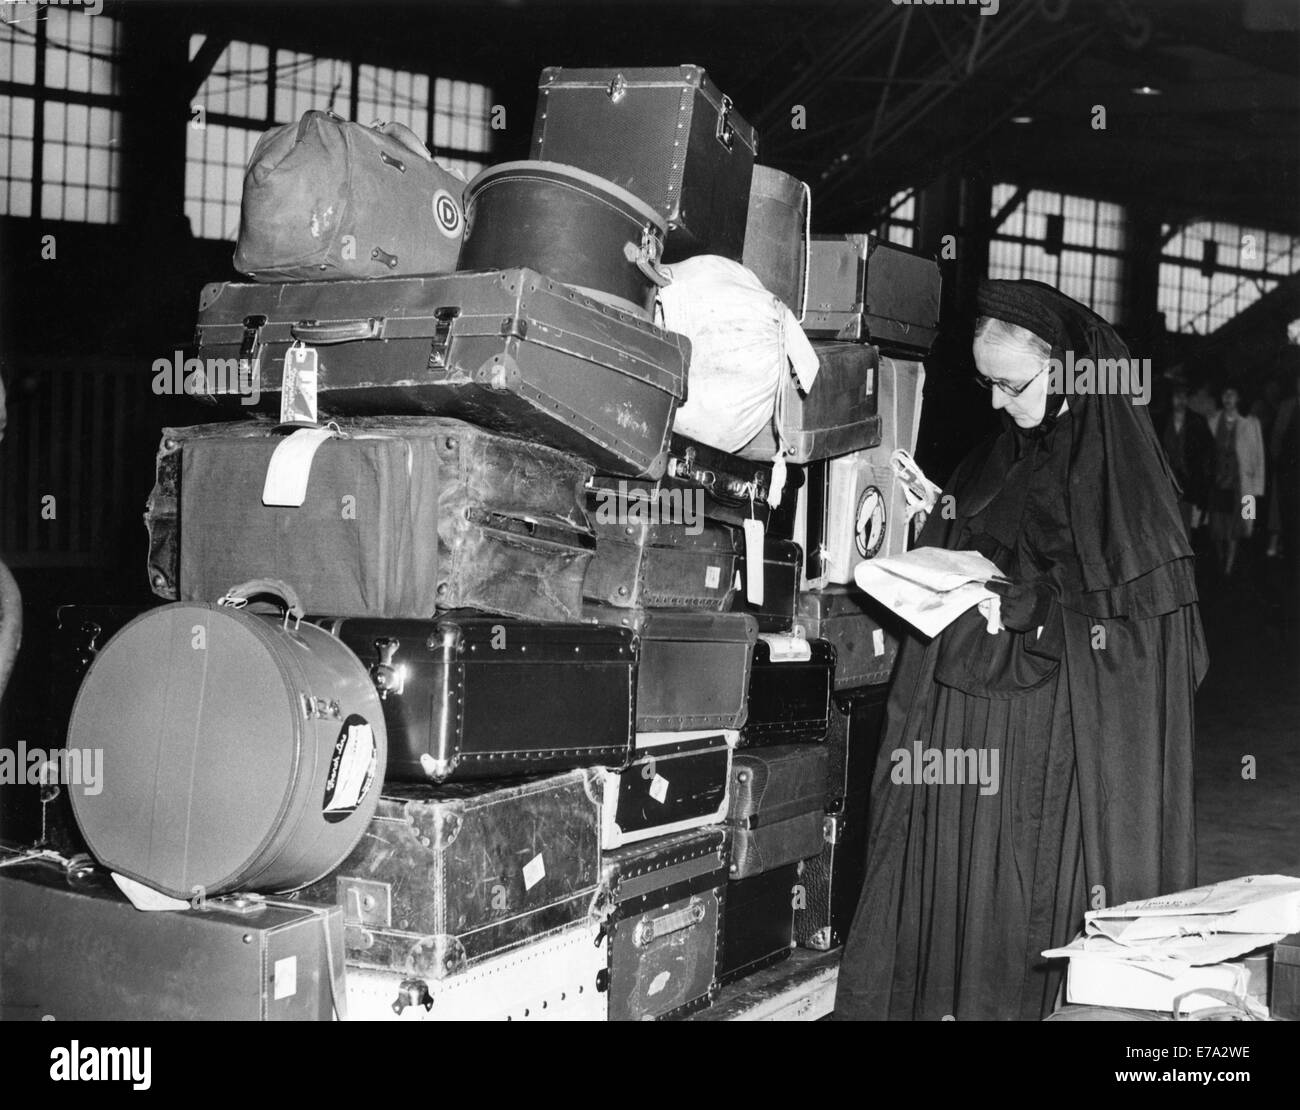 Roman Catholic Sister with Luggage Waiting  to Board SS Normandie While Ship is Being Inspected due to Pending War - Stock Image